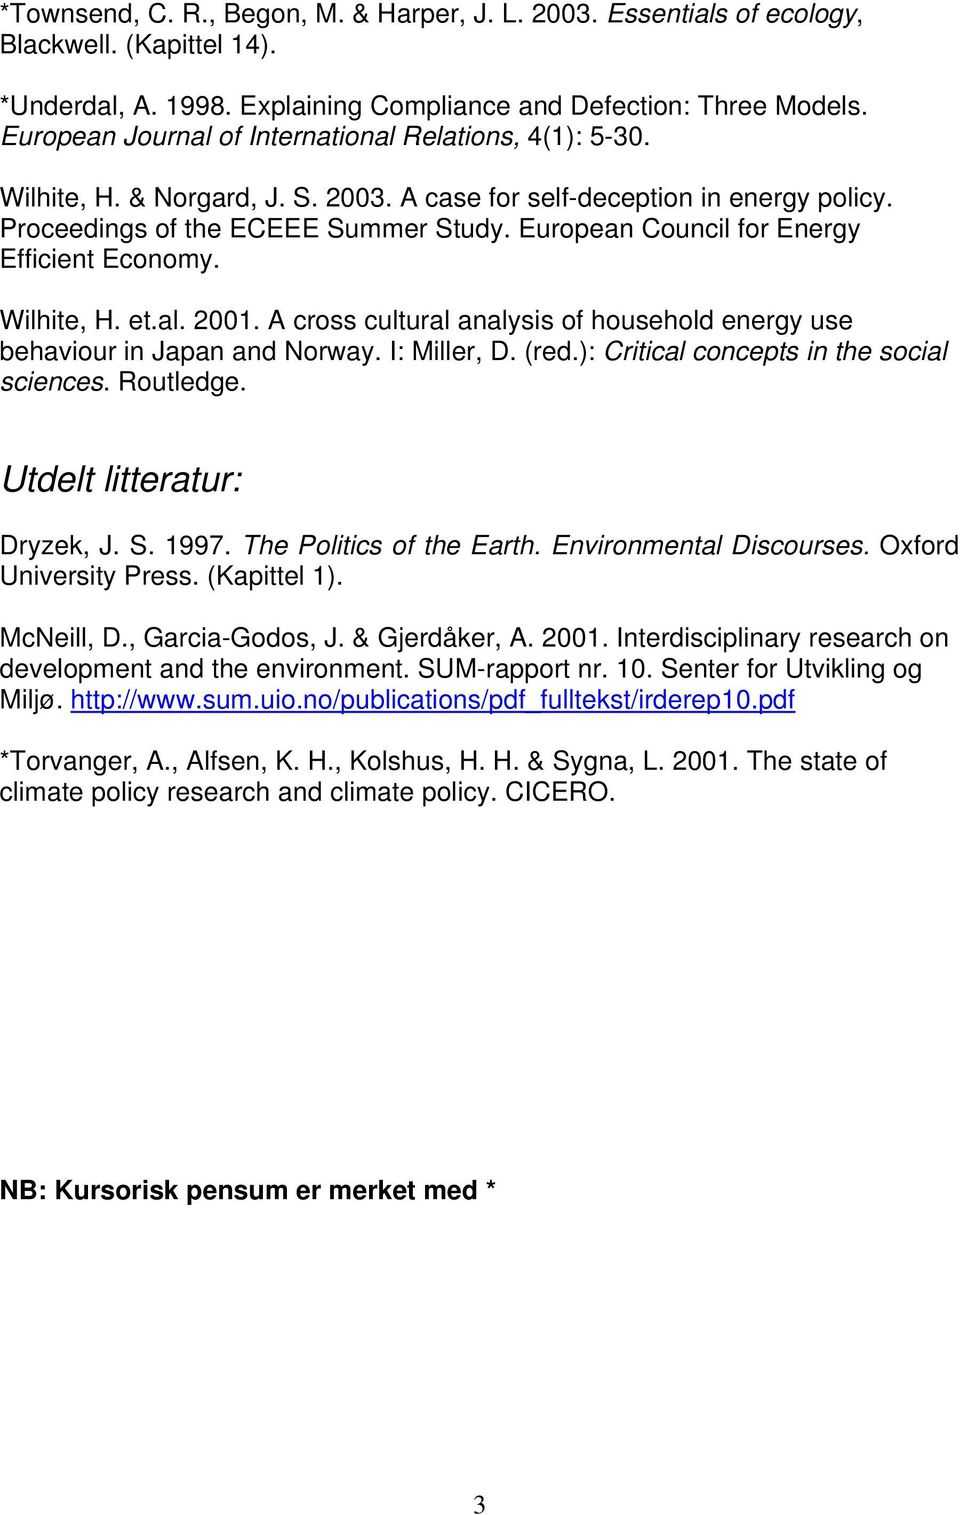 European Council for Energy Efficient Economy. Wilhite, H. et.al. 2001. A cross cultural analysis of household energy use behaviour in Japan and Norway. I: Miller, D. (red.